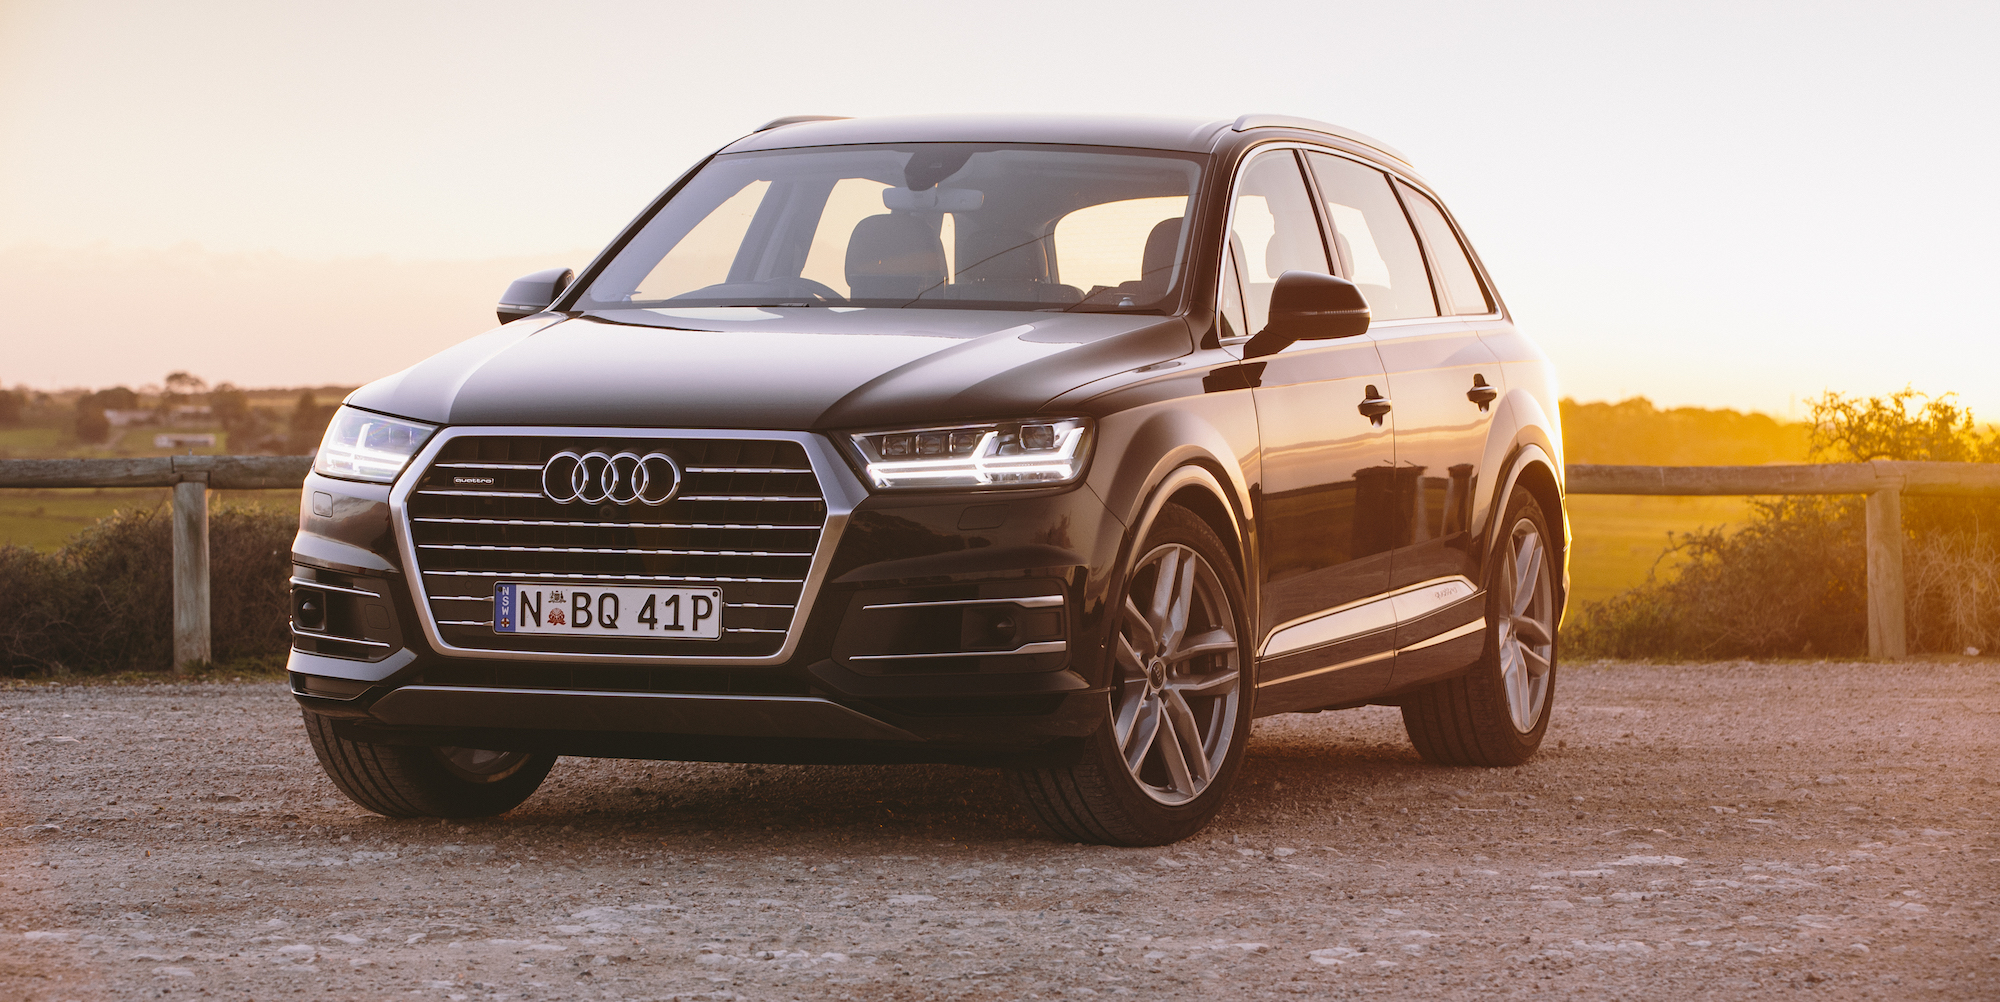 2016 Audi Q7 Review | CarAdvice